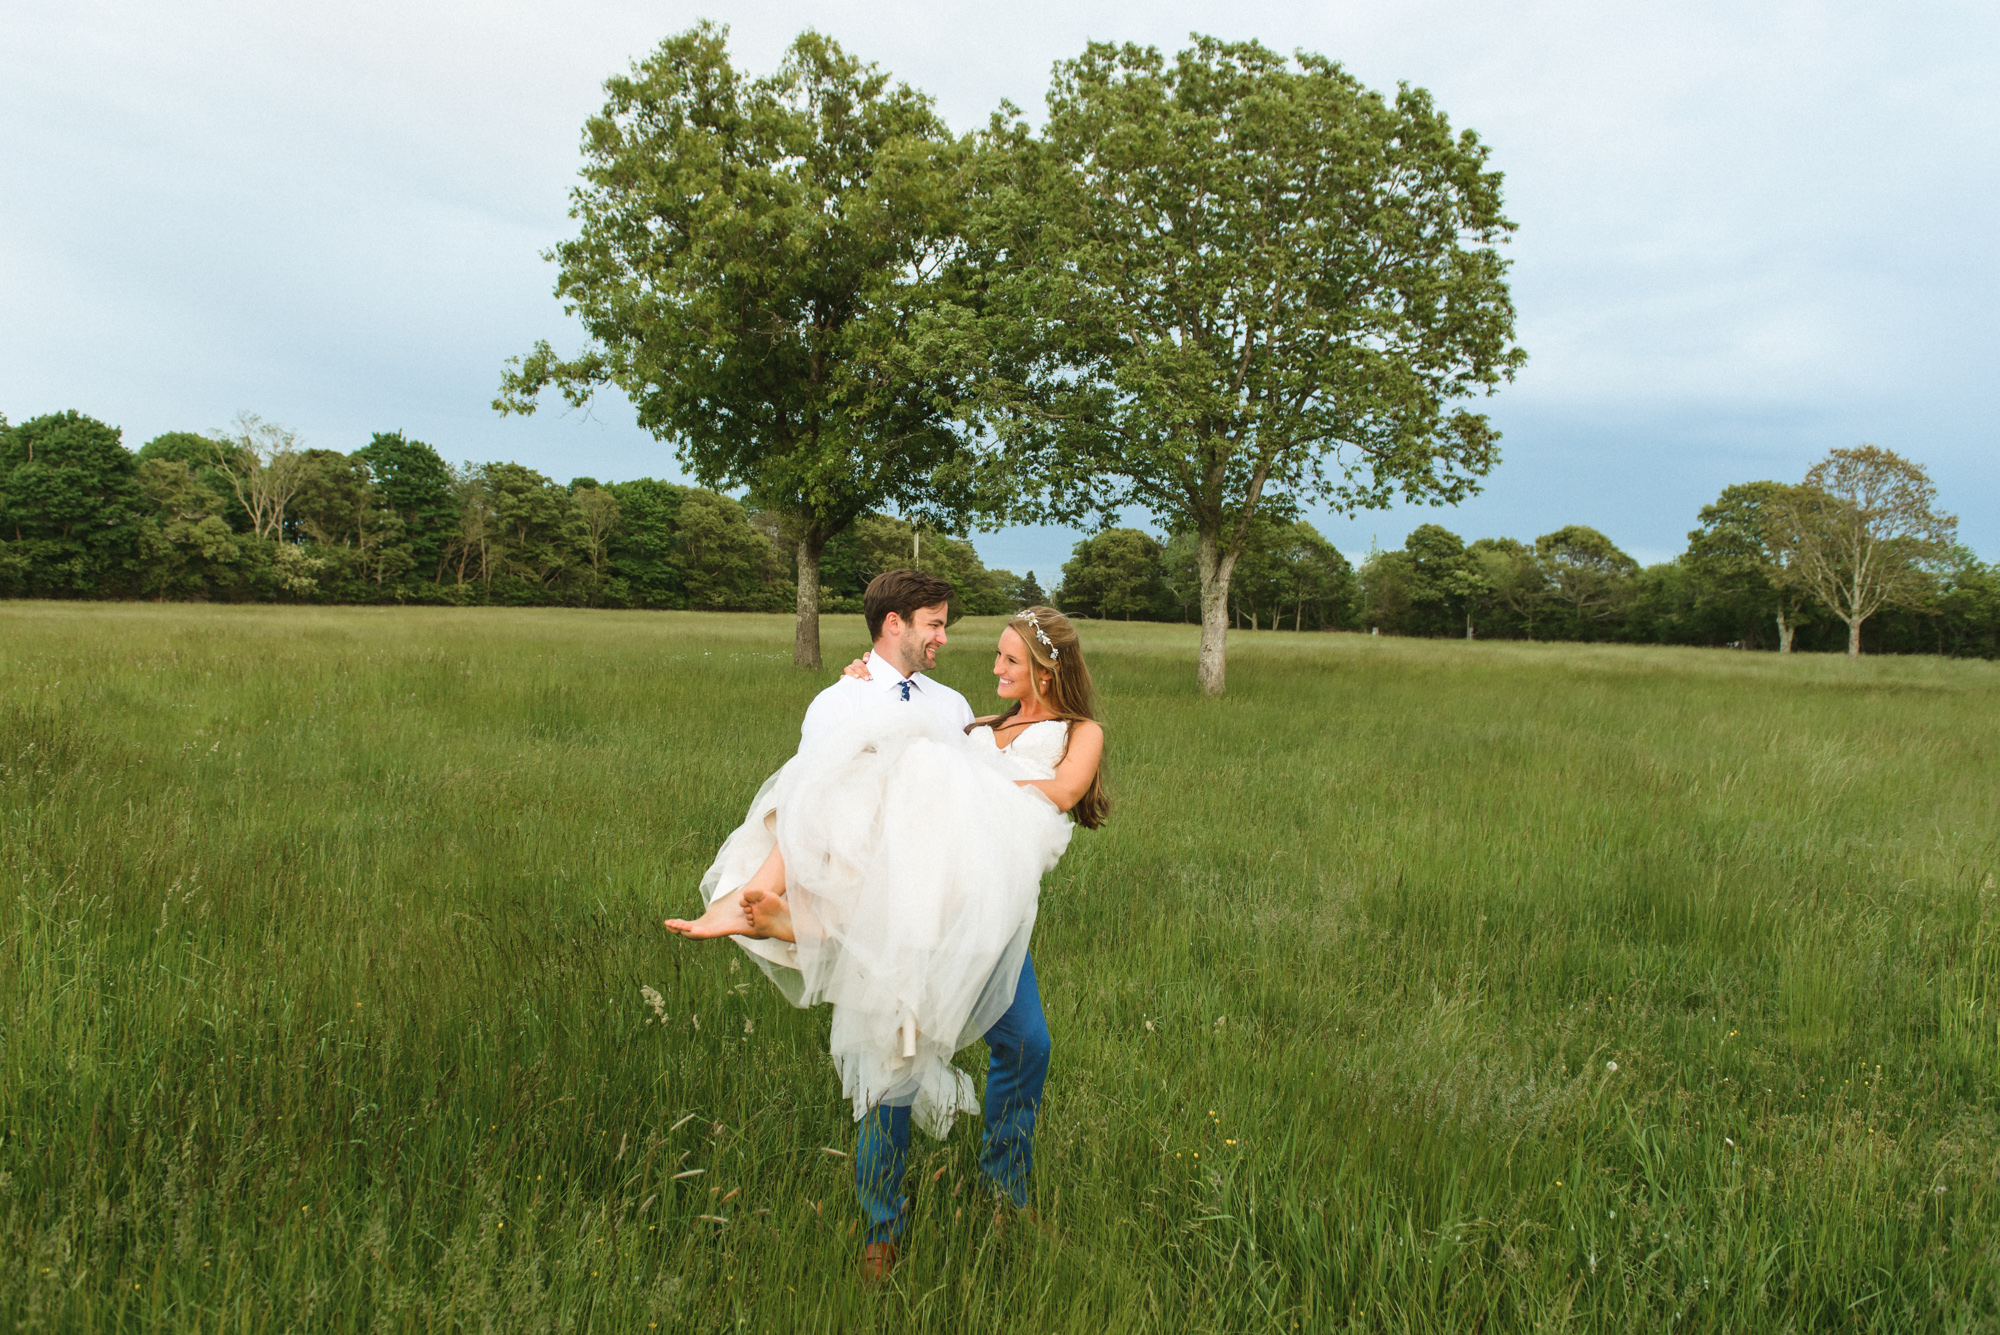 A groom carrying his bride in a field at the Martha's Vineyard Agricultural Hall in West Tisbury photo by David Welch Photography